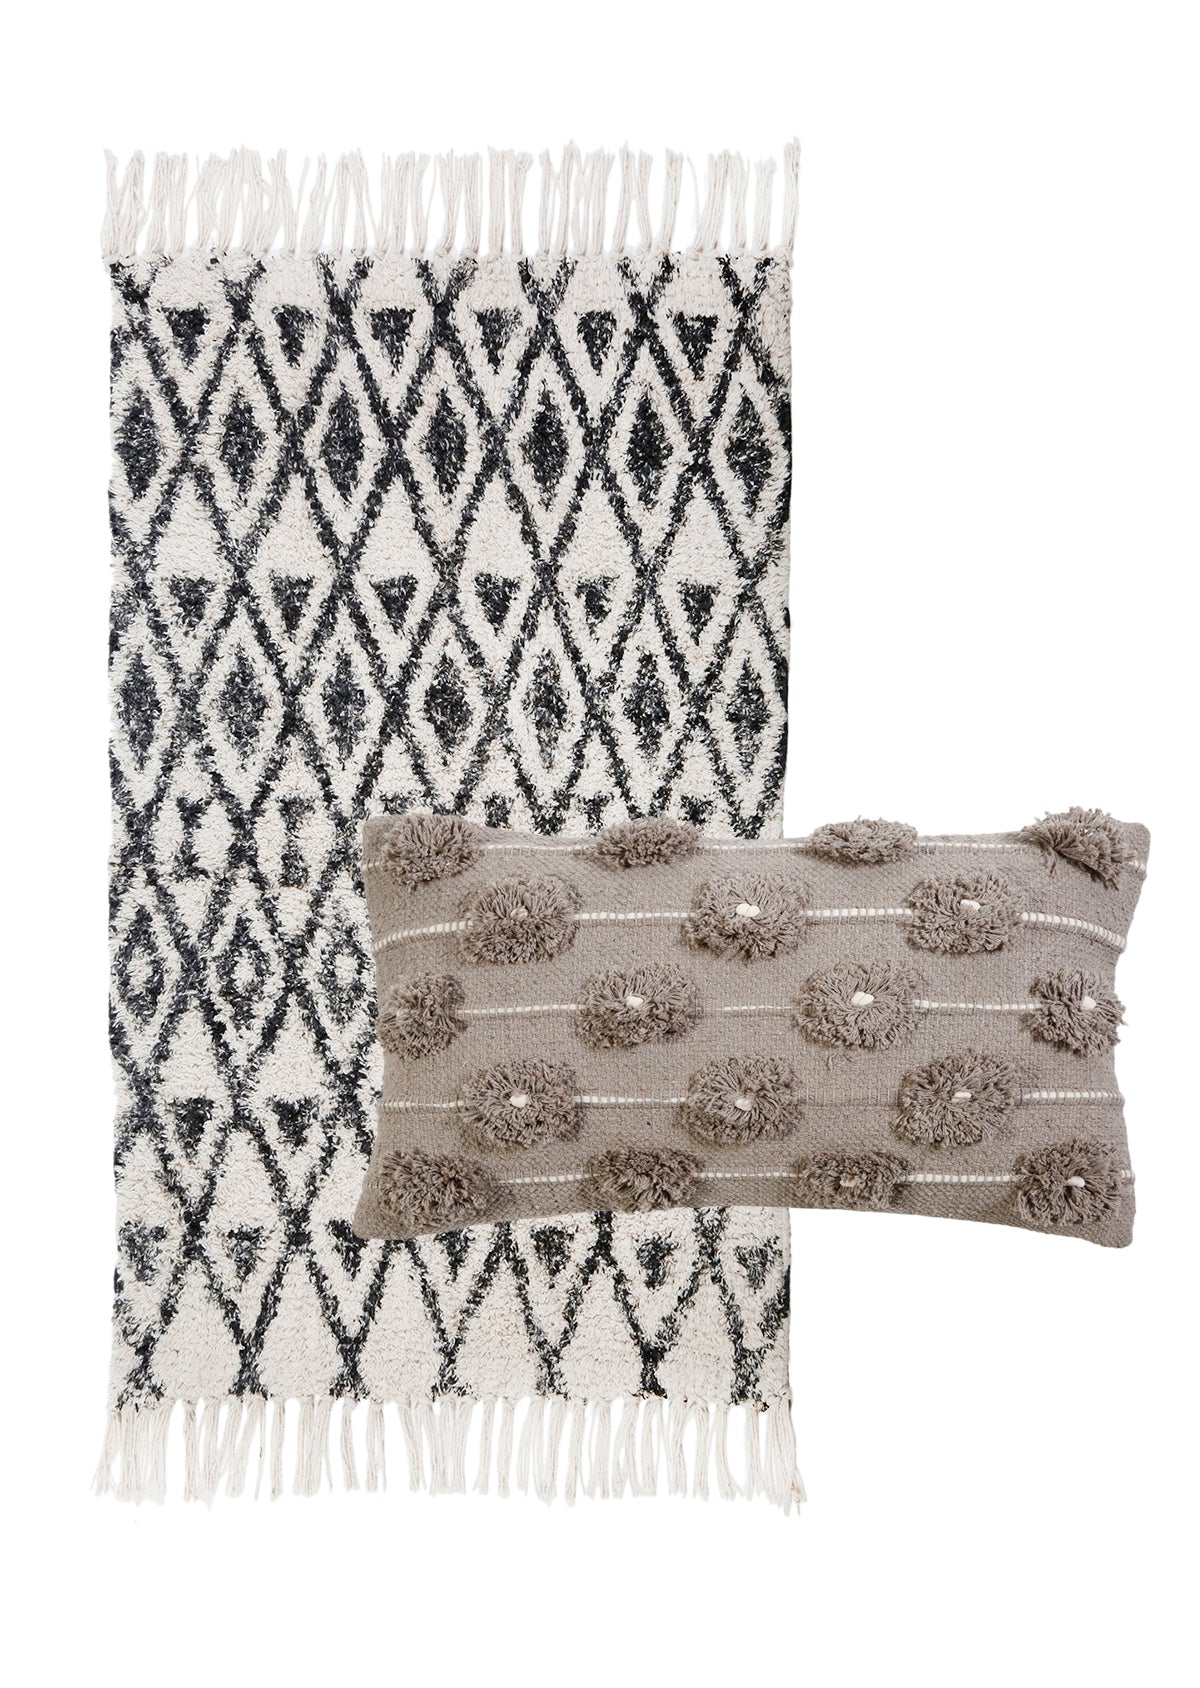 A black and ivory rug with tassels and diamond patterns, with a small pillow in the front. Brown with tassels